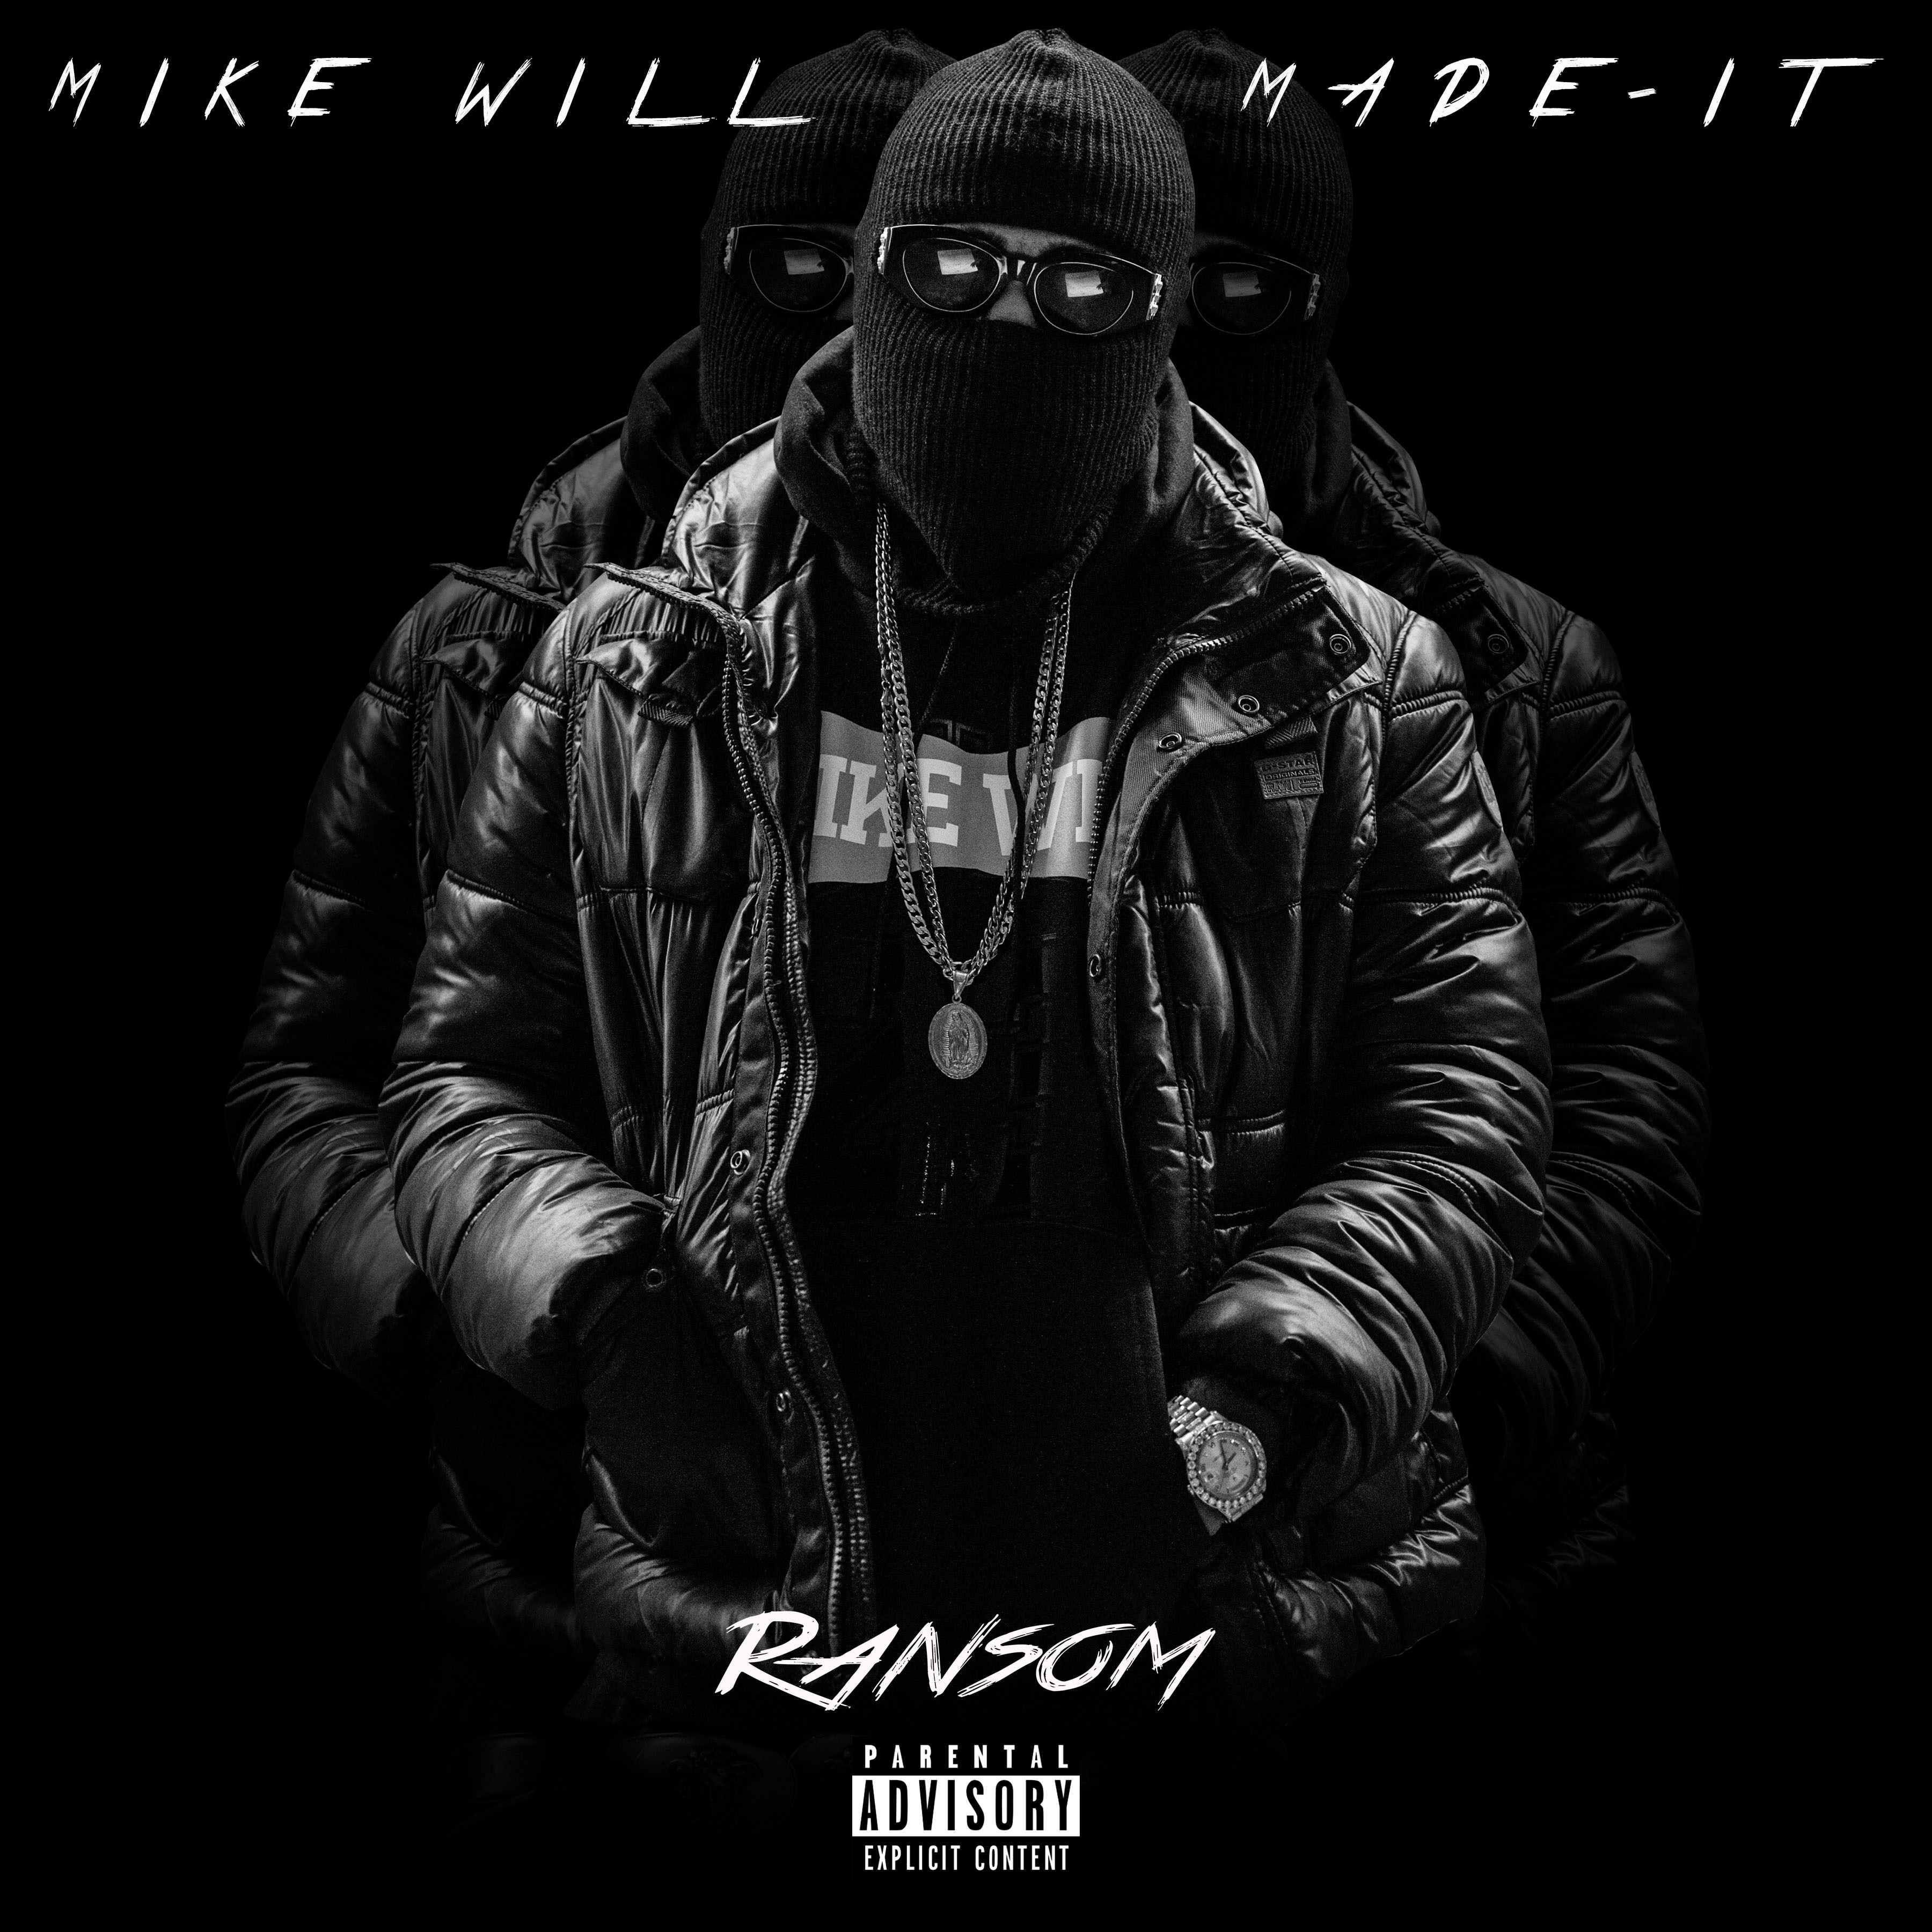 Mike WiLL Made It – Ransom (Mixtape Download)